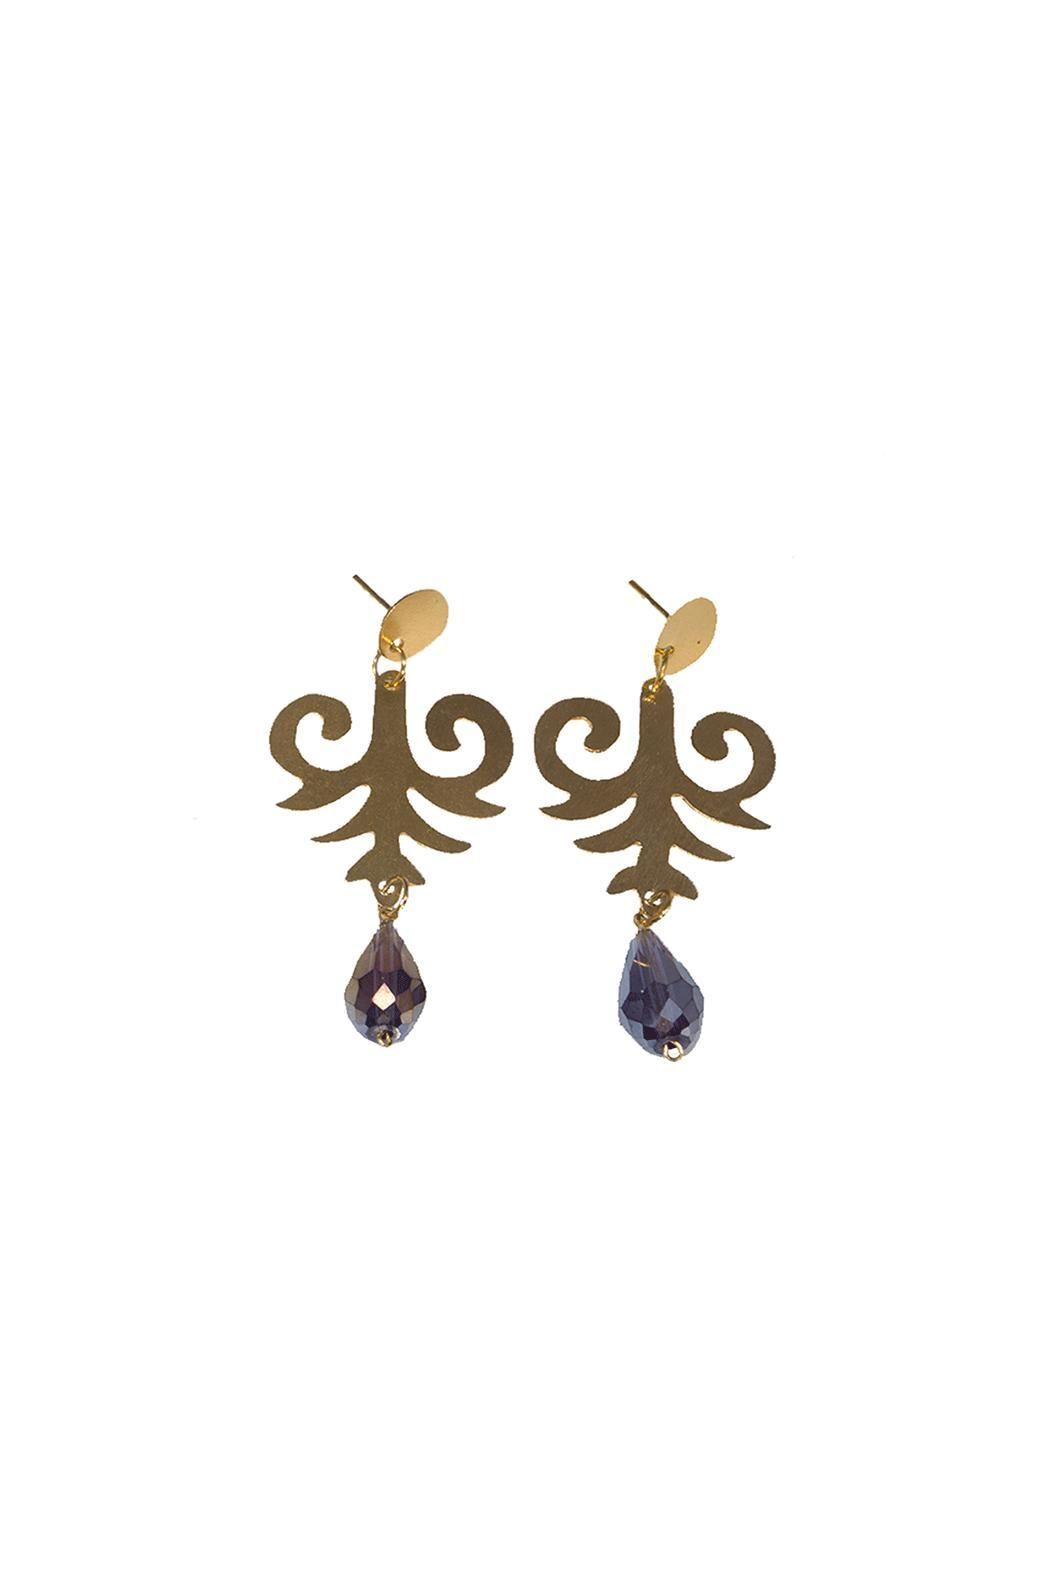 Gold-Plated Posts Backings.    Earrings Drop Length: 2 1/2''. Max Width: 1 1/4''   Arabesque Earrings by Llena eres de Gracia. Accessories - Jewelry - Earrings Florida